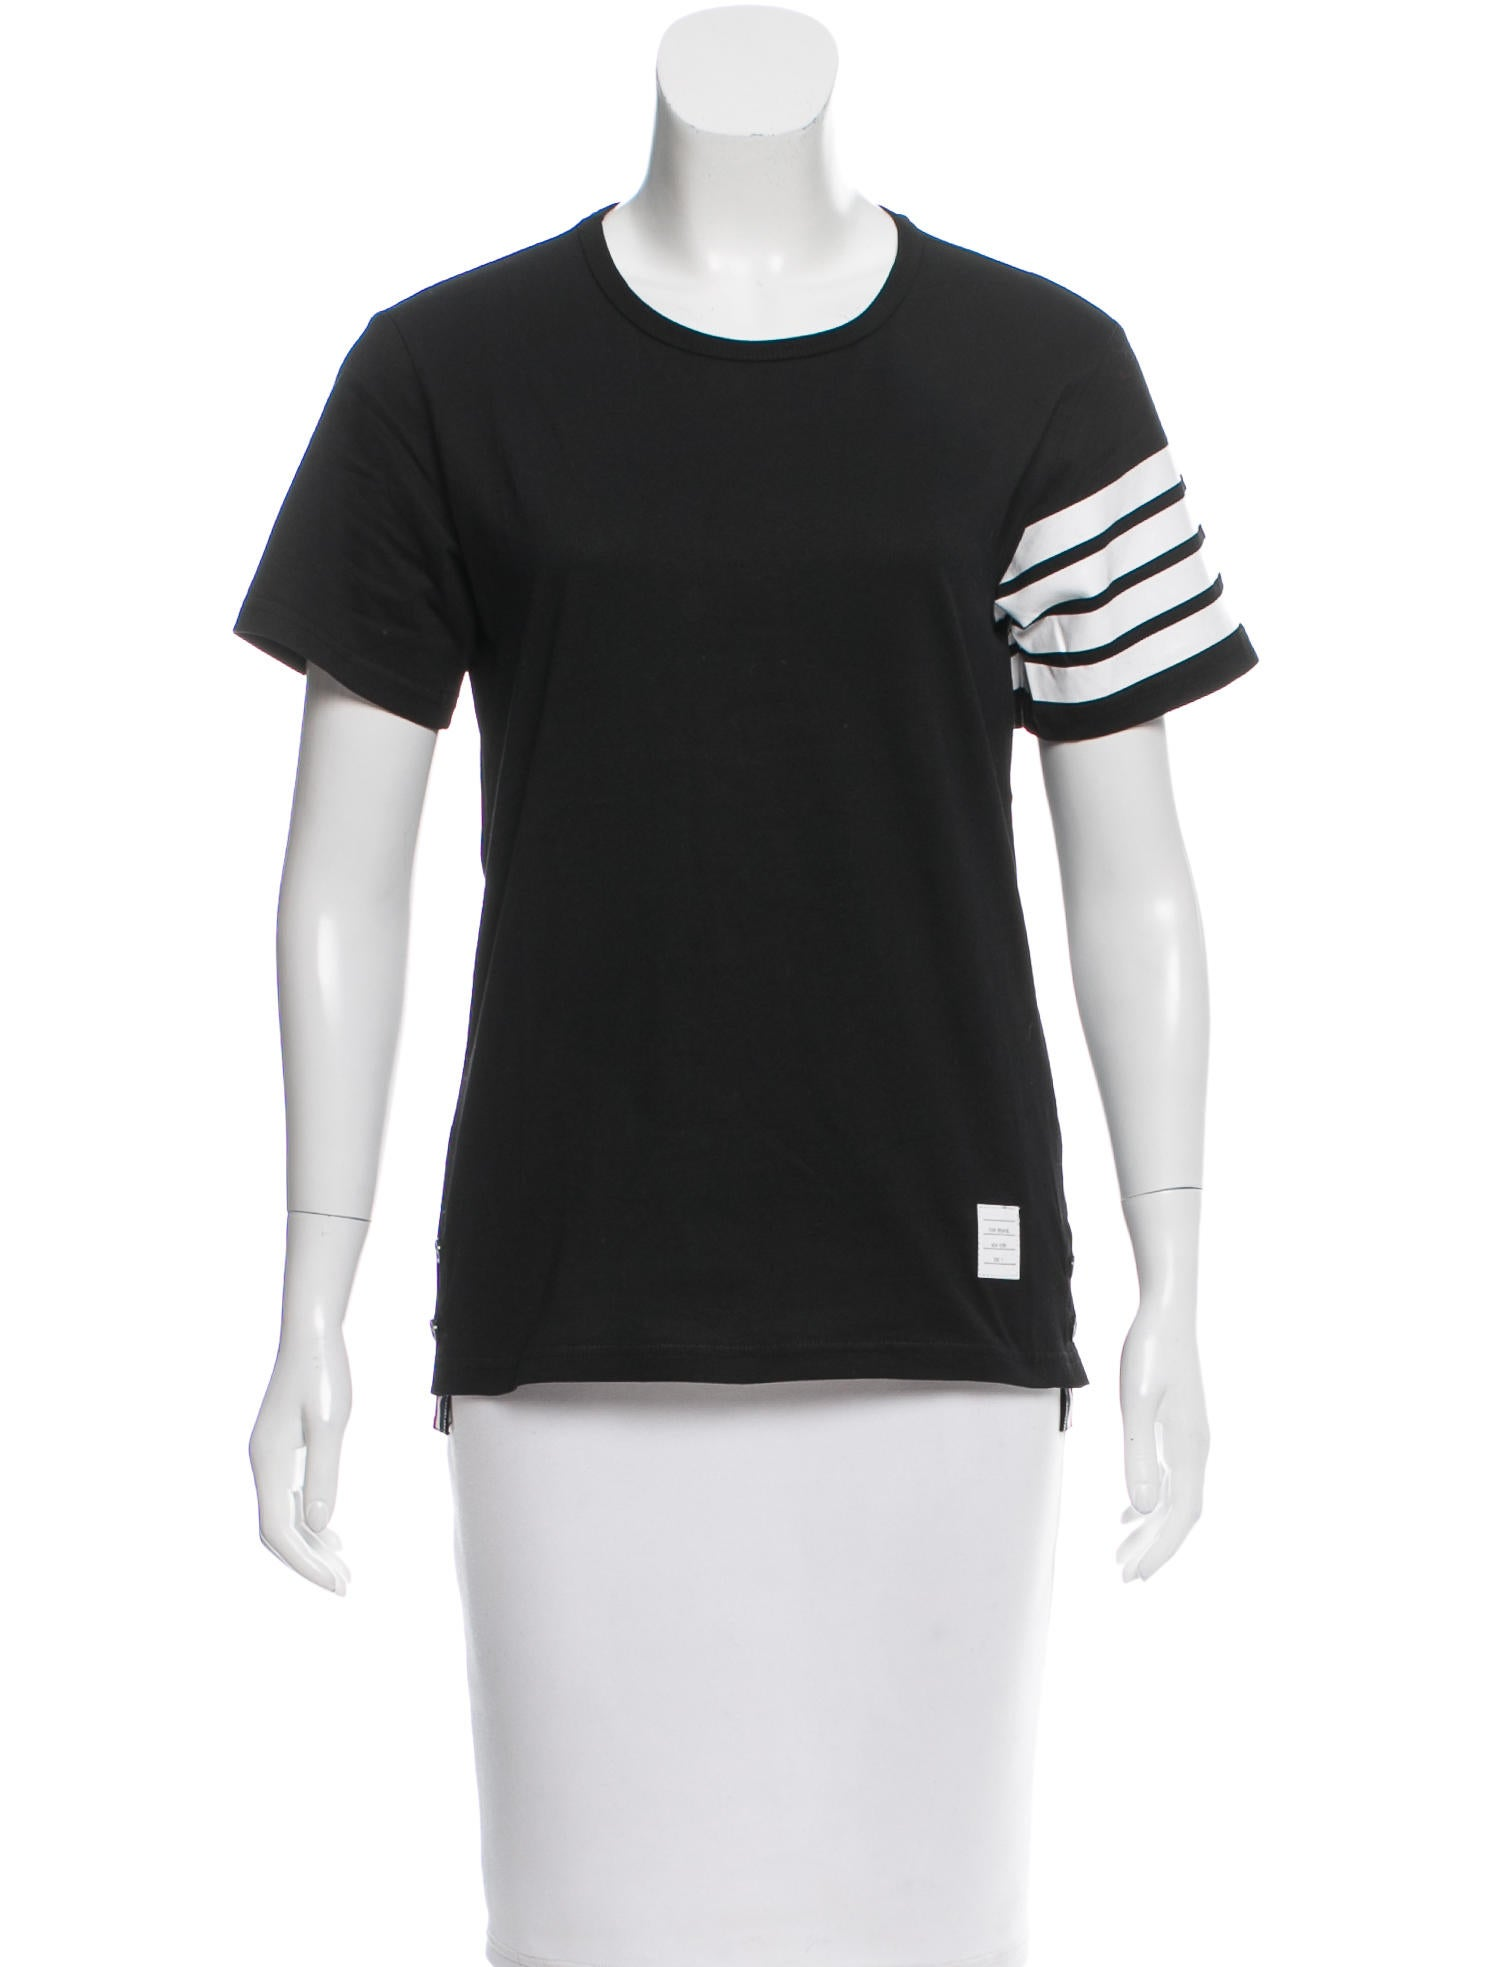 Thom browne short sleeve crew neck t shirt clothing for Thom browne t shirt